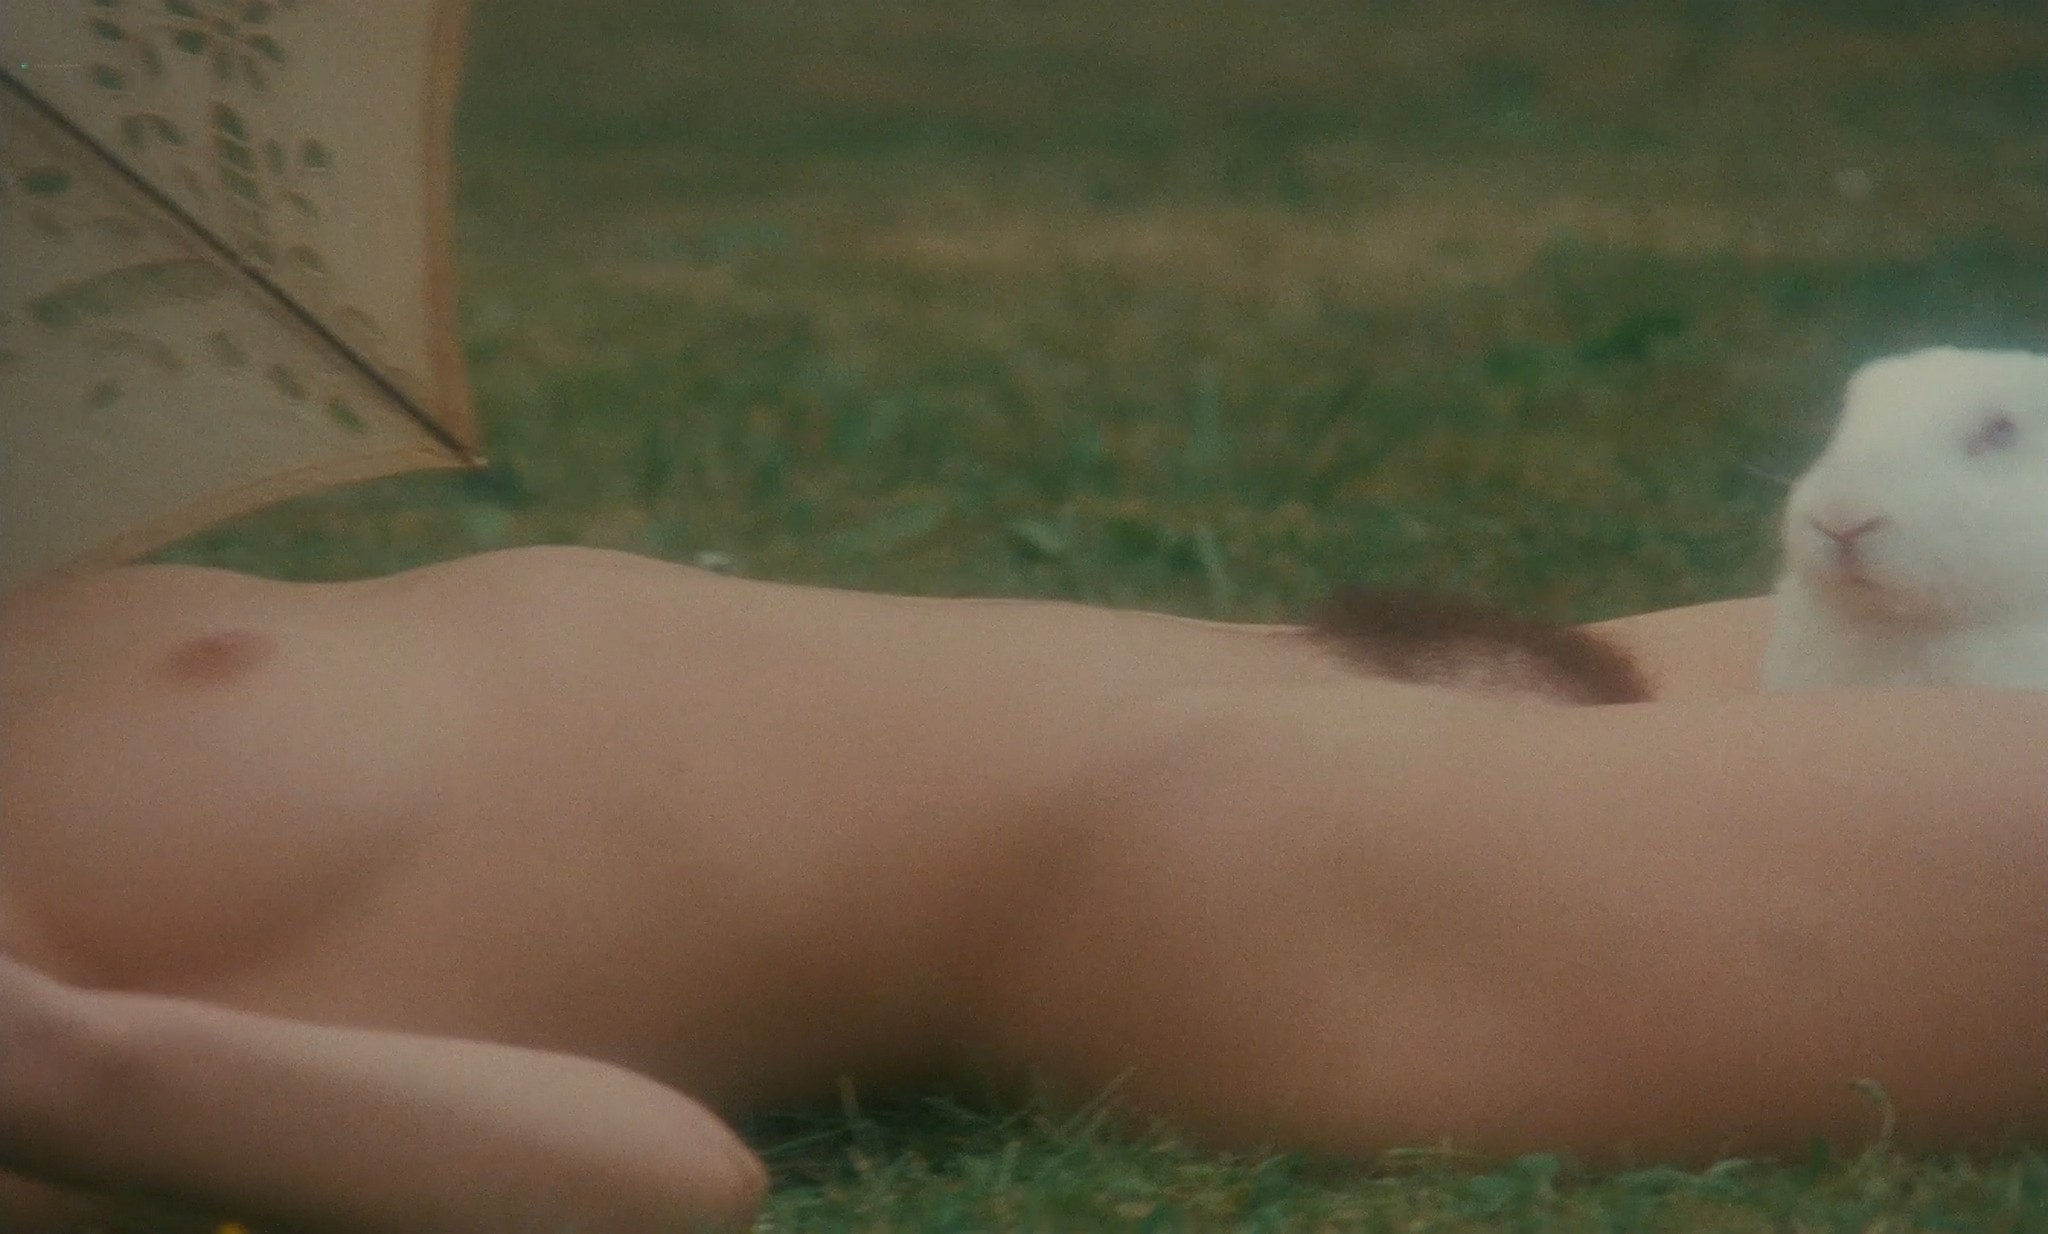 Marina Pierro nude sex Gaelle Legrand and Pascale Christophe nude bush and sex Les heroines du mal 1979 1080p BluRay REMUX 13